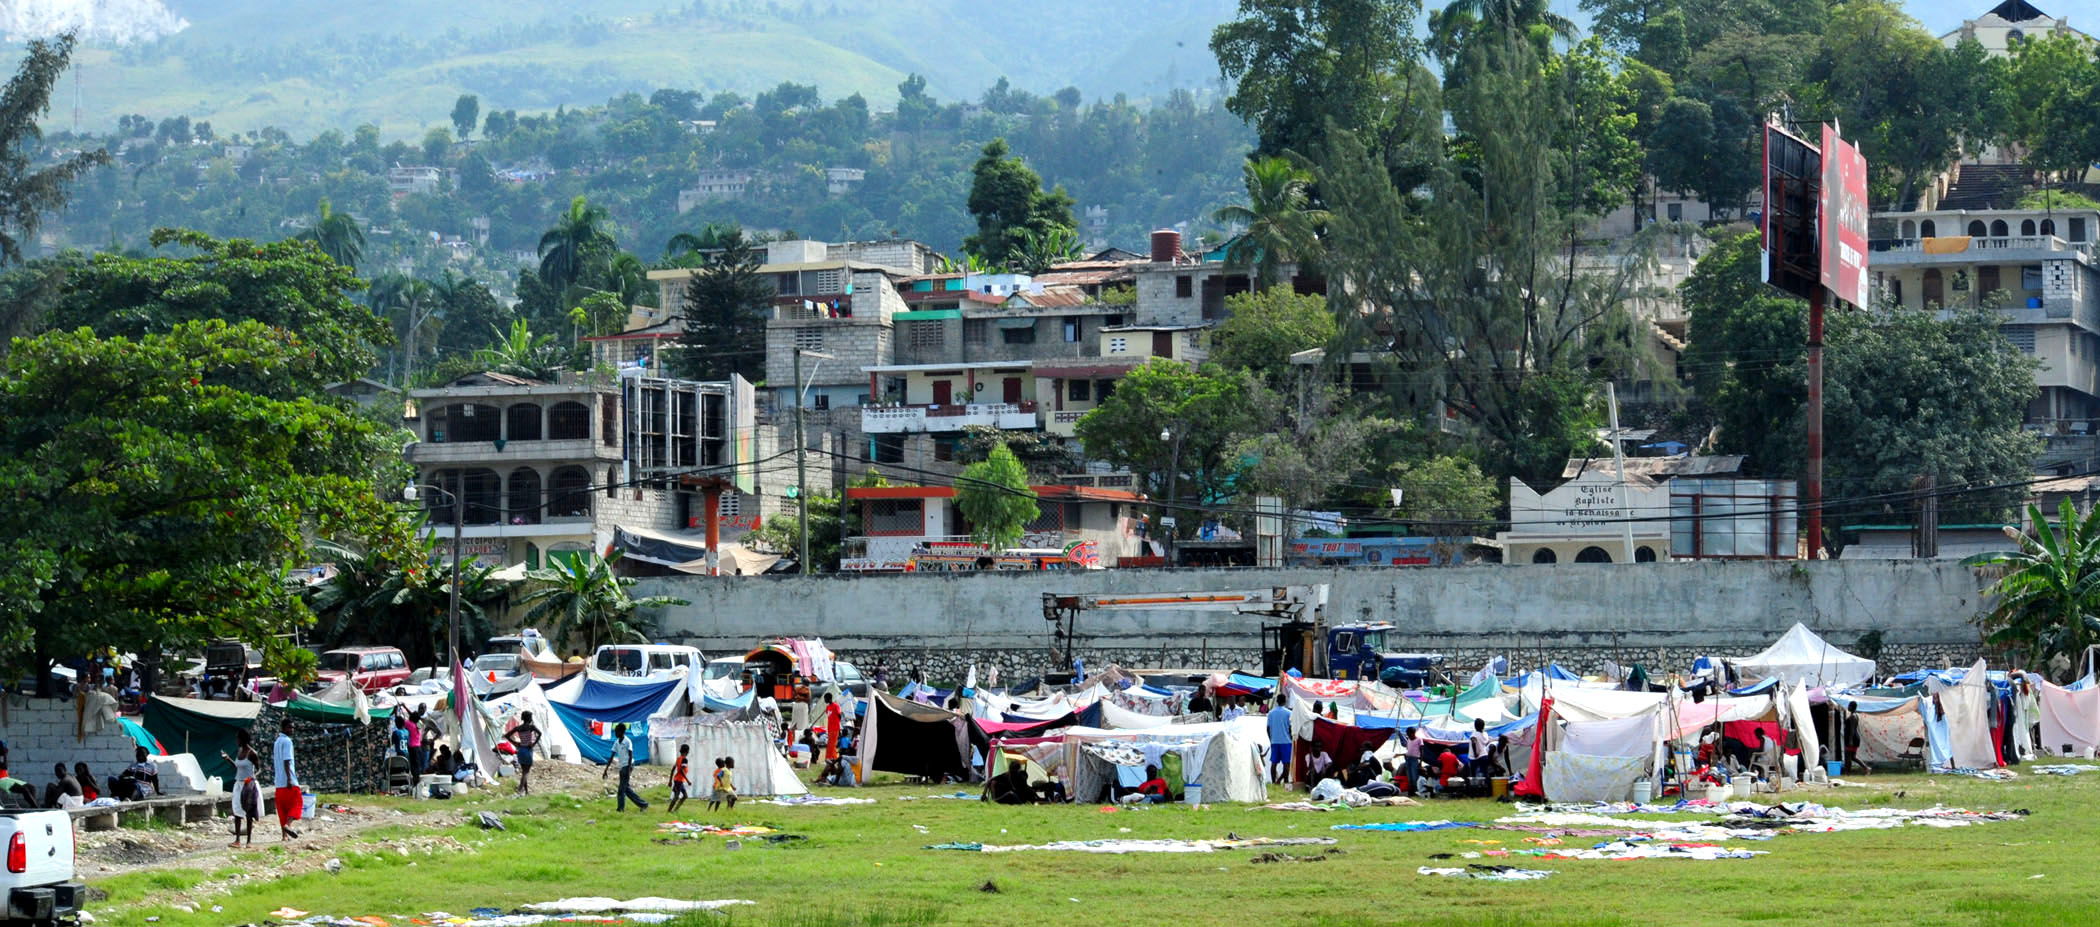 PORT-AU-PRINCE, Haiti (Jan. 16, 2010) Haitian earthquake victims in a tent city wait for medical treatment from U.S. Navy and U.S. Coast Guard personnel. Several U.S. military units, including the aircraft carrier USS Carl Vinson (CVN 70) and Carrier Air Wing (CVW) 17 are conducting humanitarian and disaster relief operations as part of Operation Unified Response after a 7.0 magnitude earthquake caused severe damage near Port-au-Prince on Jan. 12, 2010. (U.S. Navy photo by Mass Communication Specialist 2nd Class Adrian White/Released) Public Domain Mark 1.0